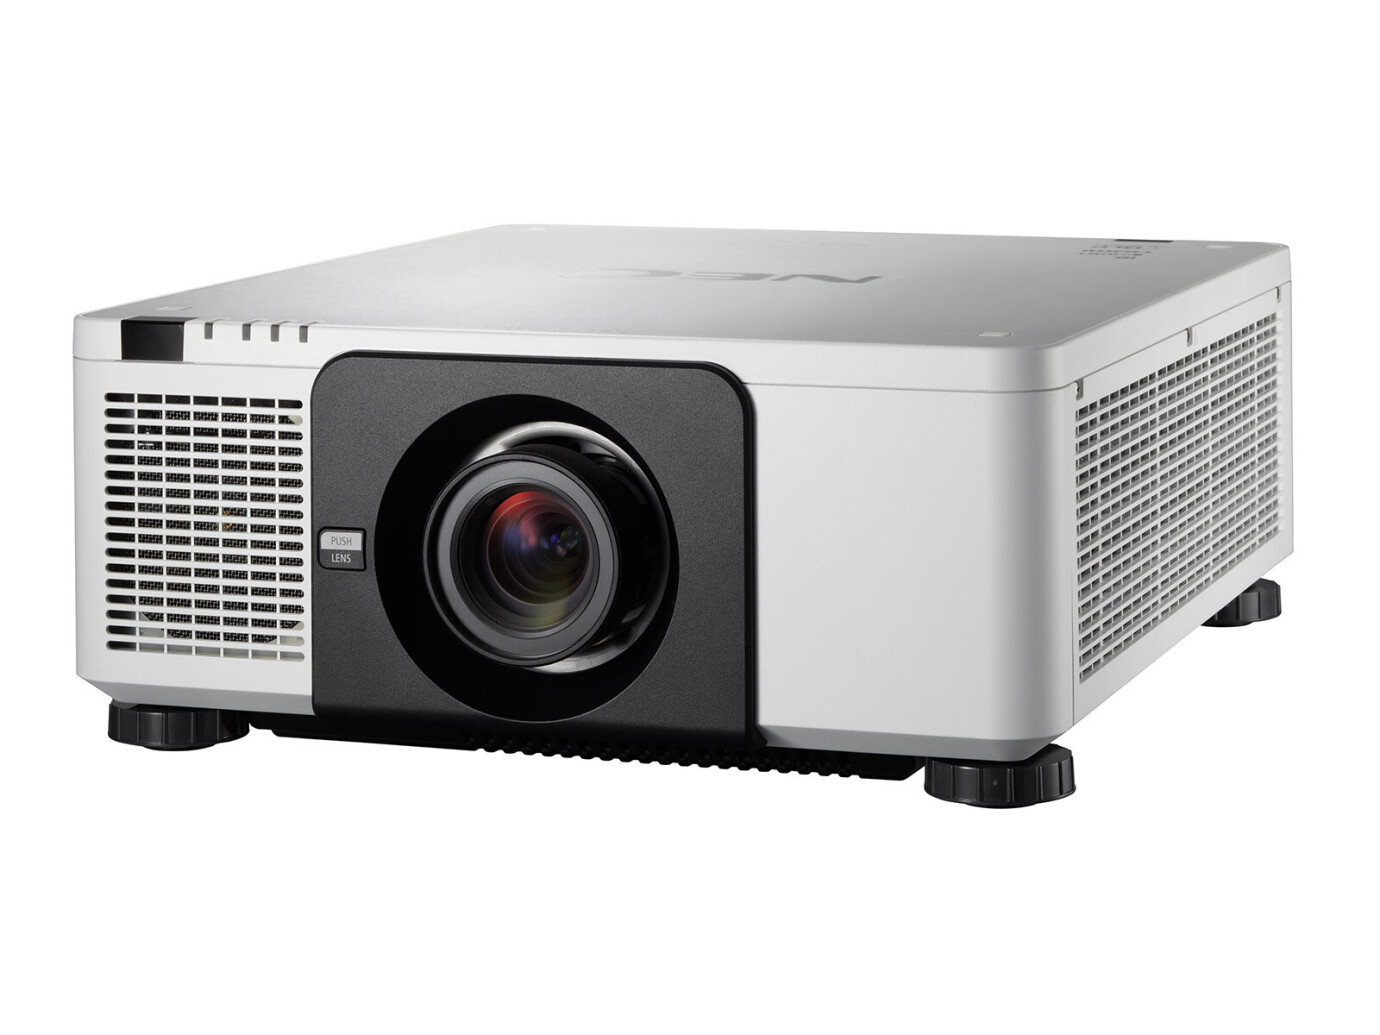 NEC PX803UL-WH (with NP18ZL lens)